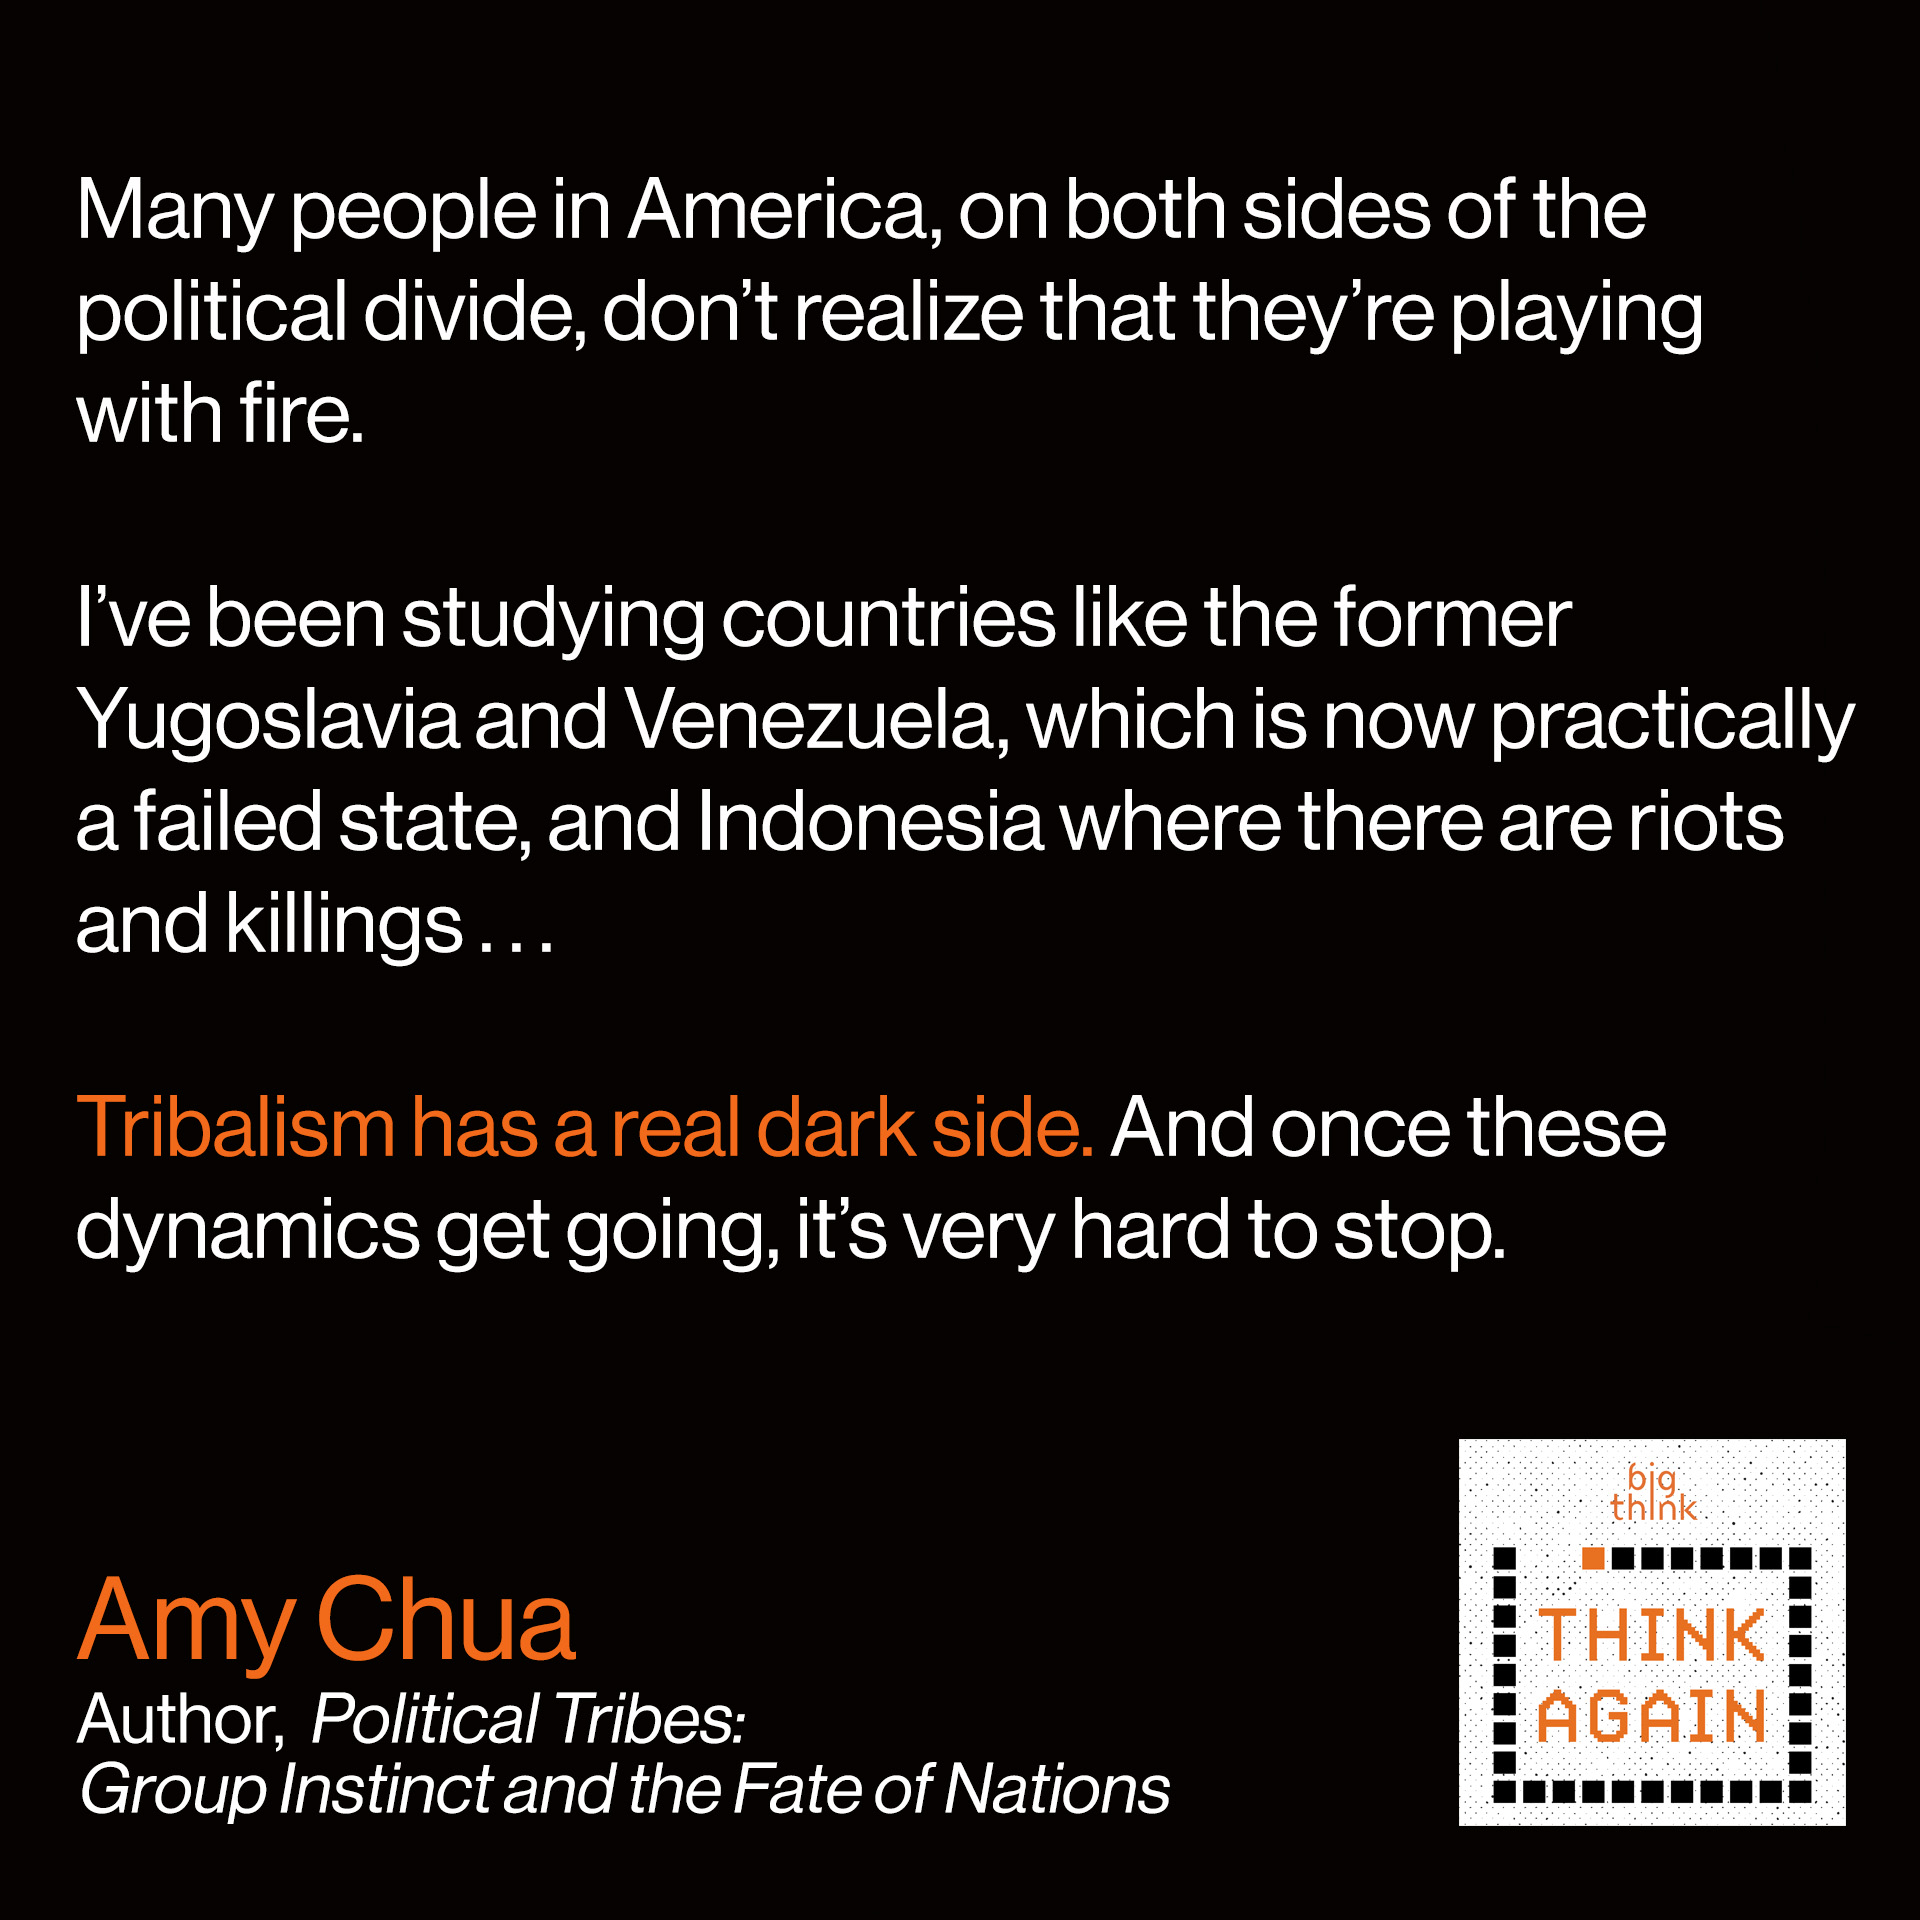 Amy Chua Quote: I think it's because I study developing countries that I really feel that many people in America on both sides of the political divide don't realize that they're playing with fire. I've been studying countries like the former Yugoslavia and Venezuela, which is now practically a failed state, and Indonesia where there are riots and killings… Tribalism has a real dark side. And once these dynamics get going, it's very hard to stop.